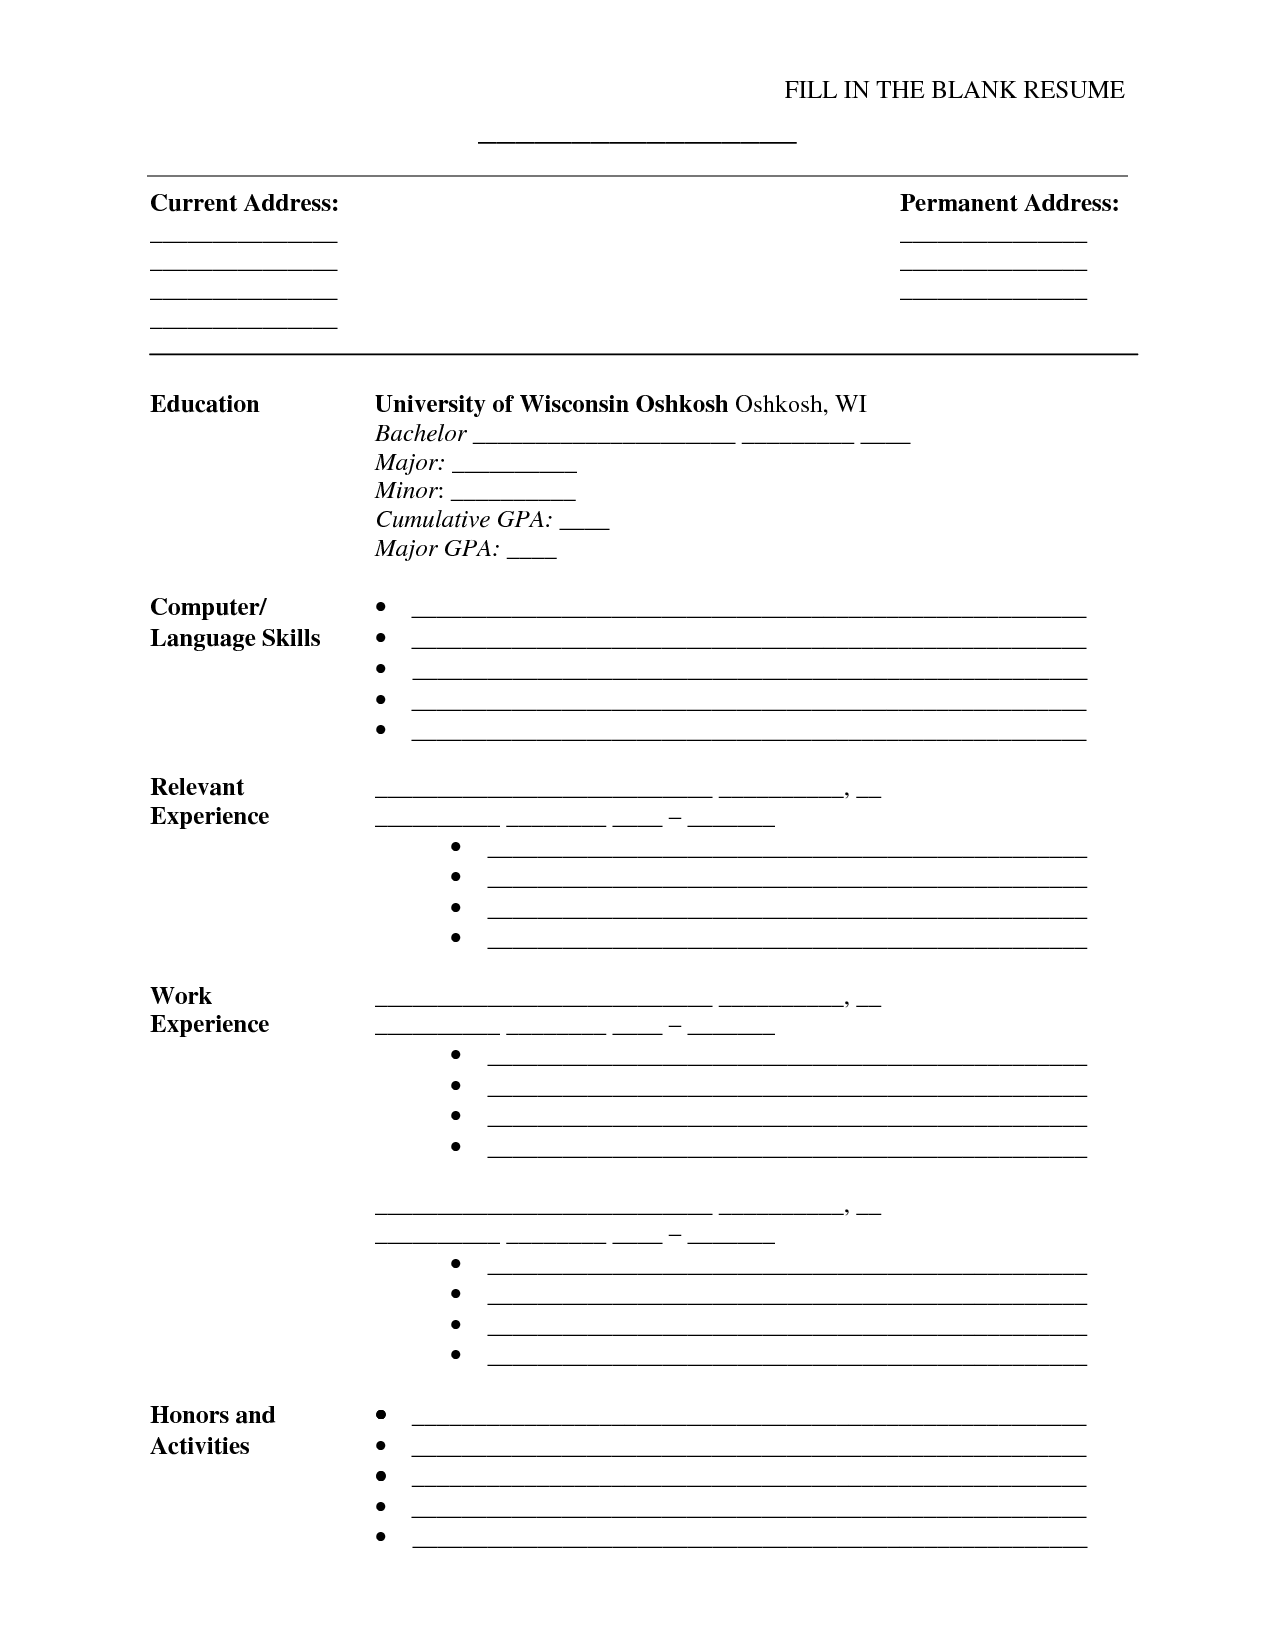 Fill In The Blank Resume PDF  httpwwwresumecareerinfofillintheblankresumepdf3